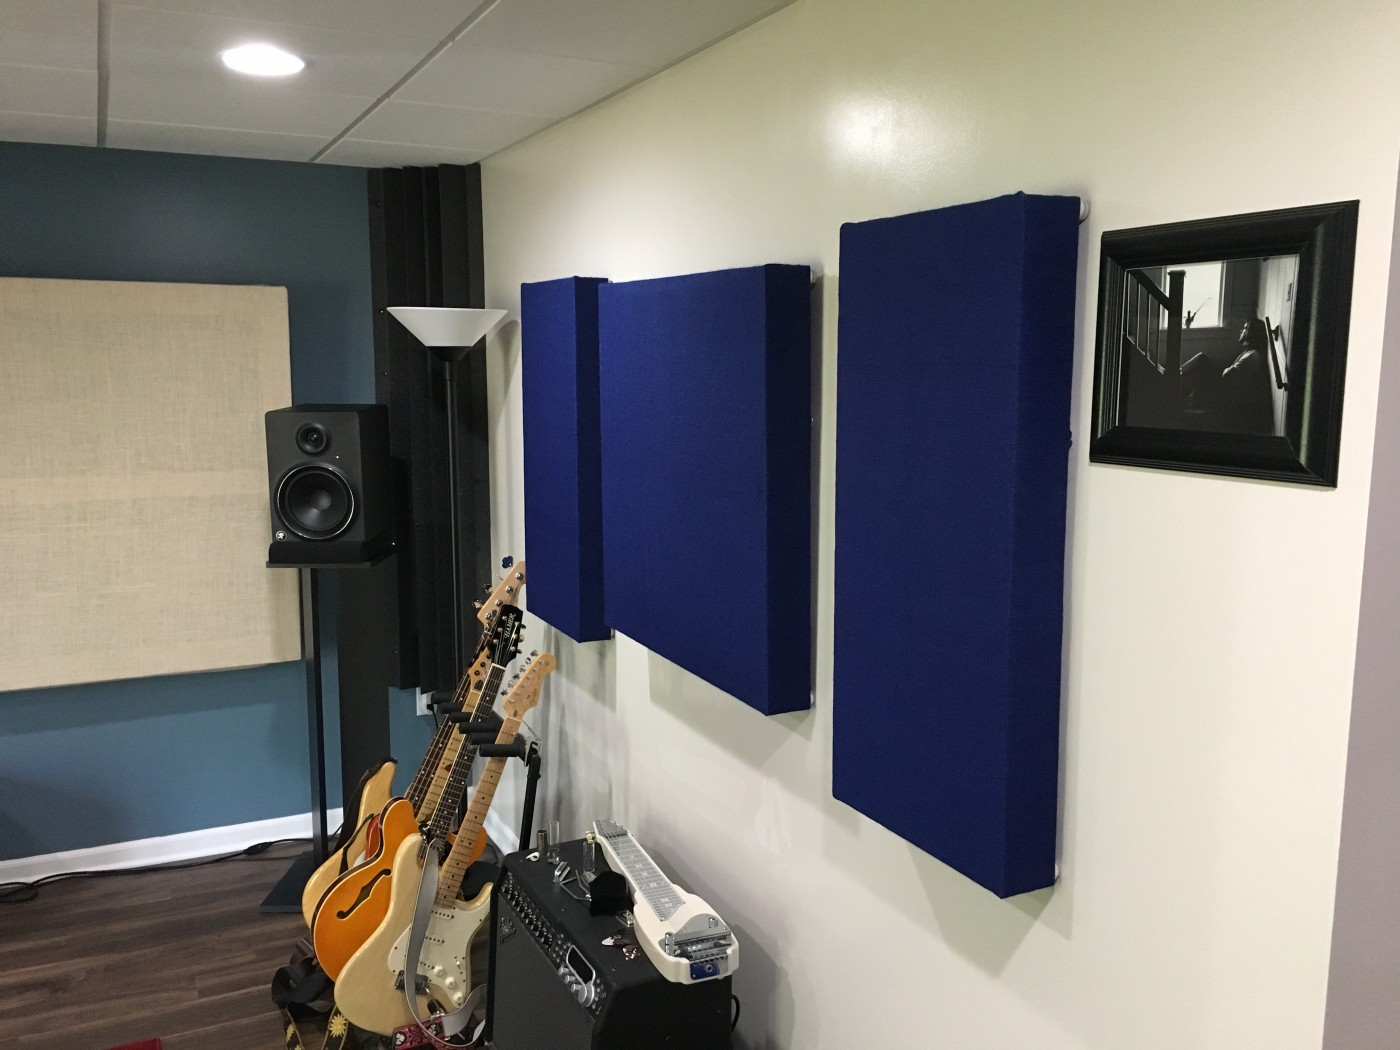 Medium, hand-made acoustic panels. Wood frames with rockwool insulation, and wrapped in acoustic-grade burlap.